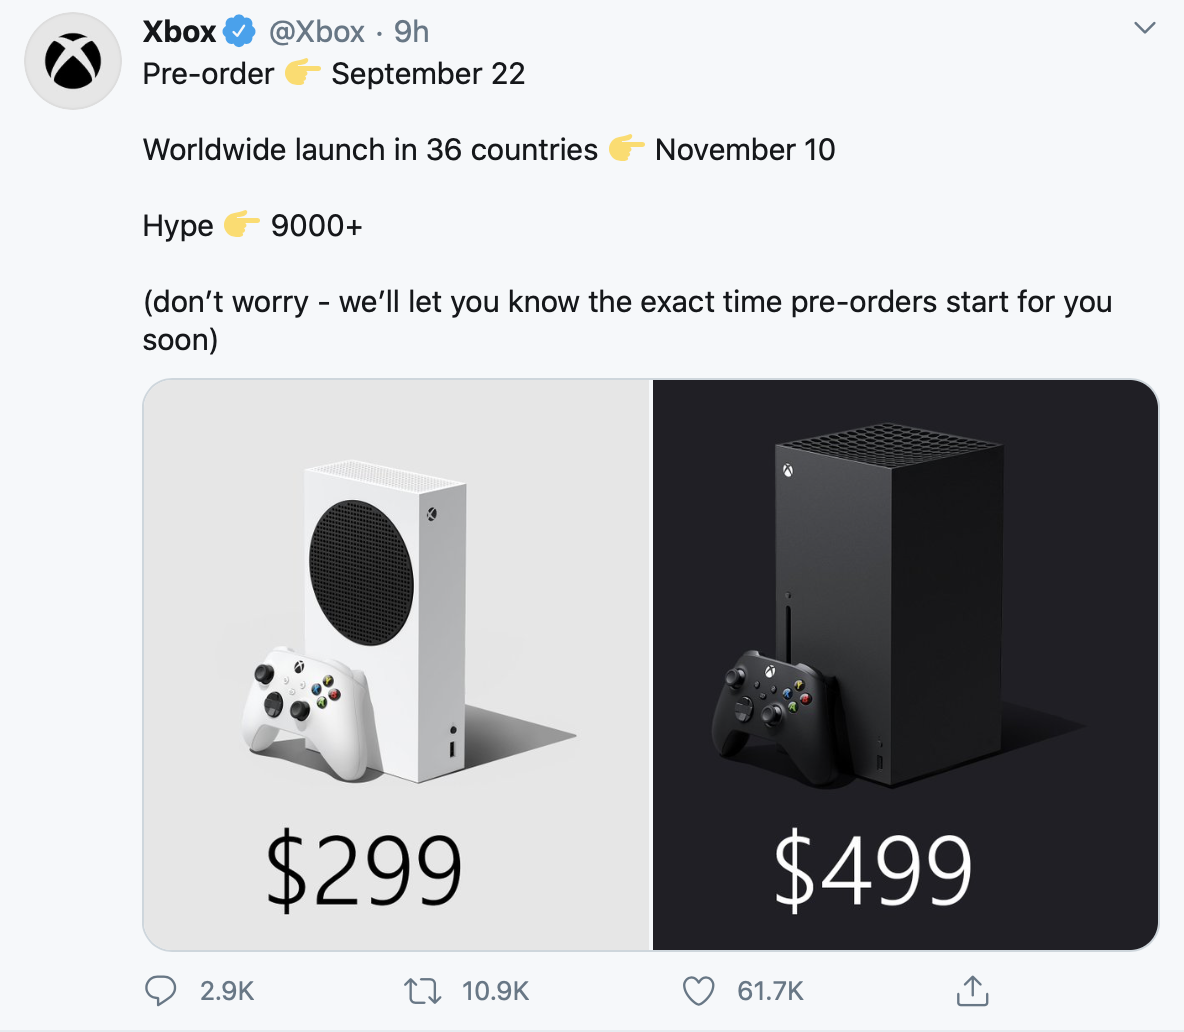 Announcement of Xbox Series X and Xbox Series S consoles.